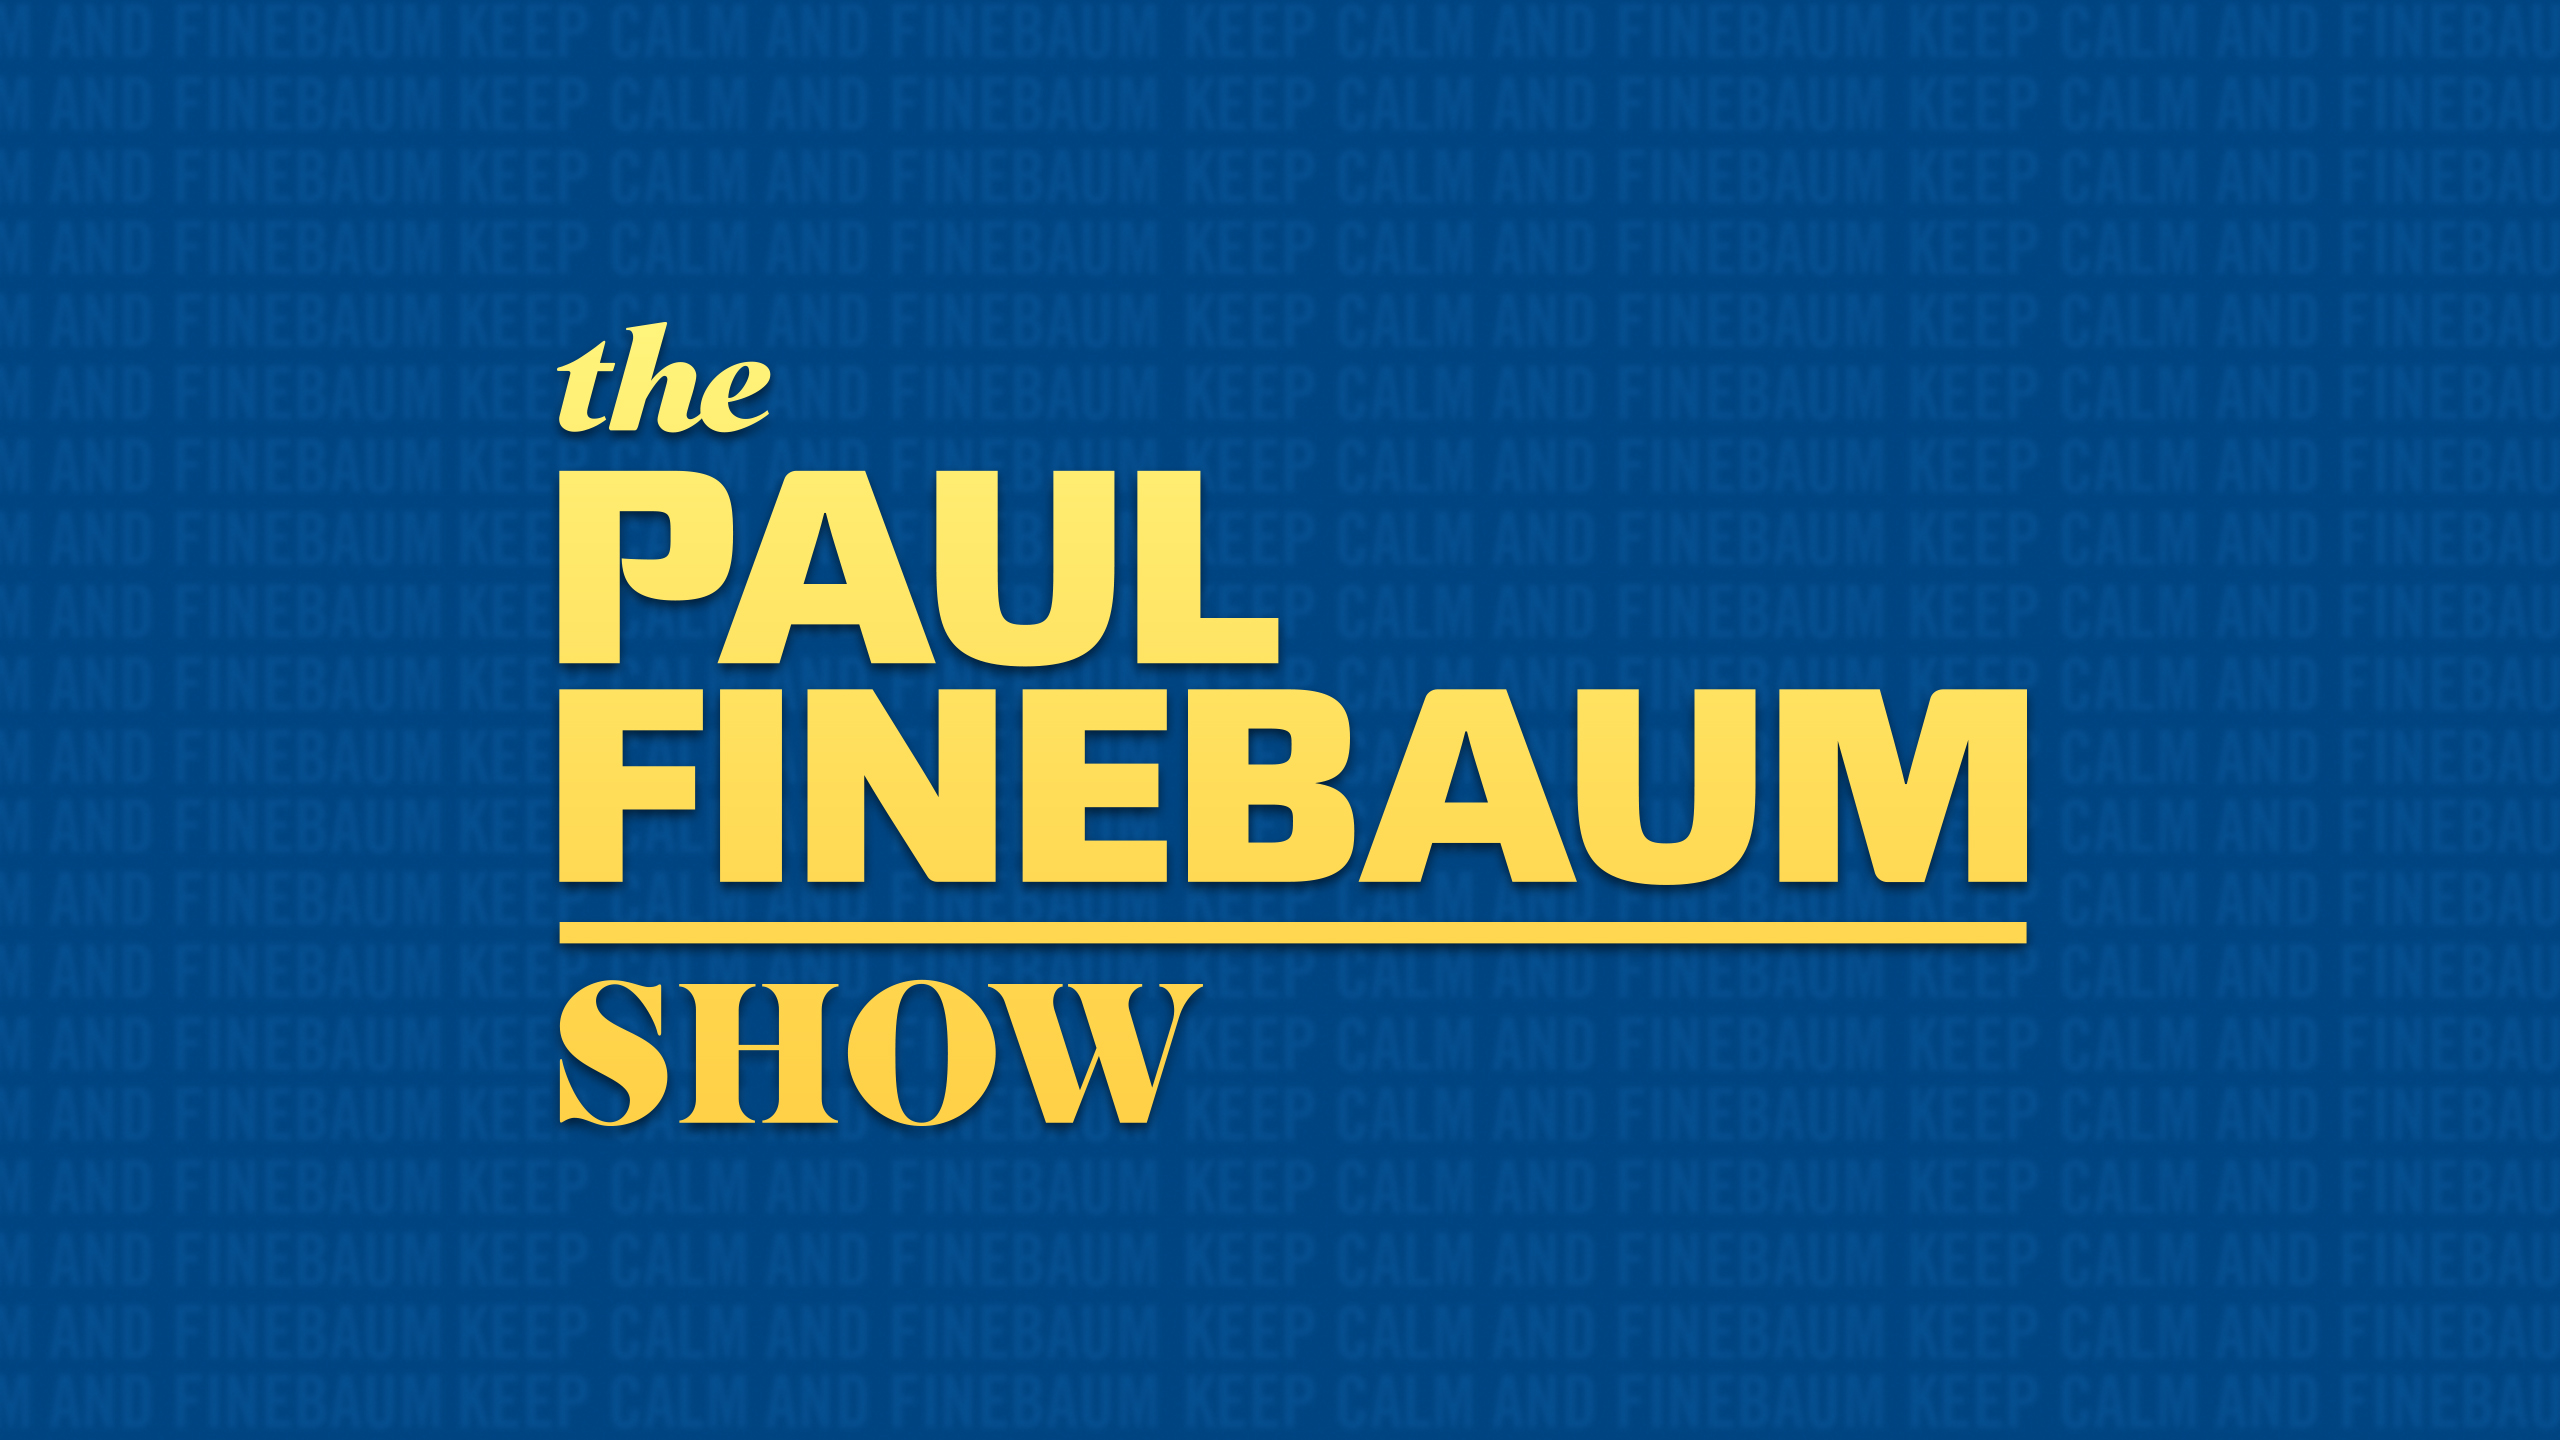 Fri, 9/21 - The Paul Finebaum Show Presented by Johnsonville